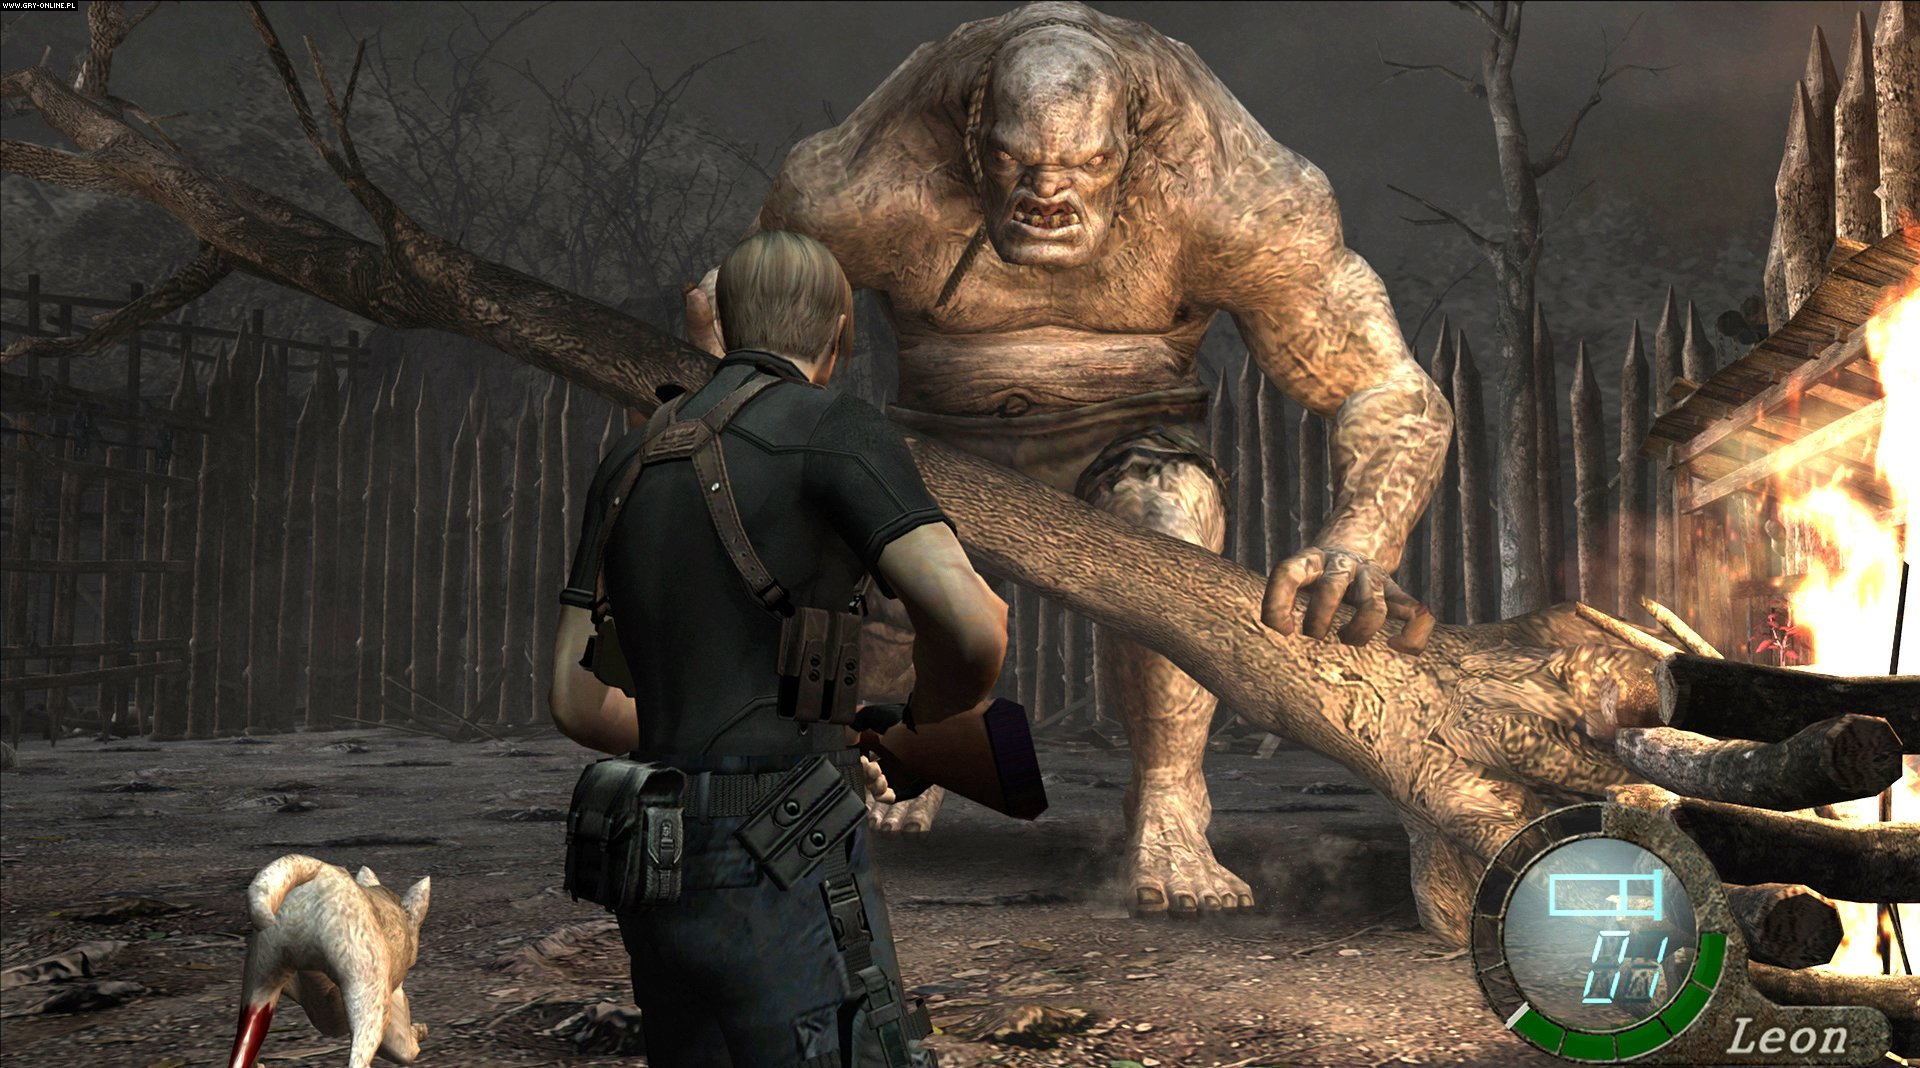 Resident Evil 4 HD PC, PS4, XONE, Switch Gry Screen 8/38, Capcom